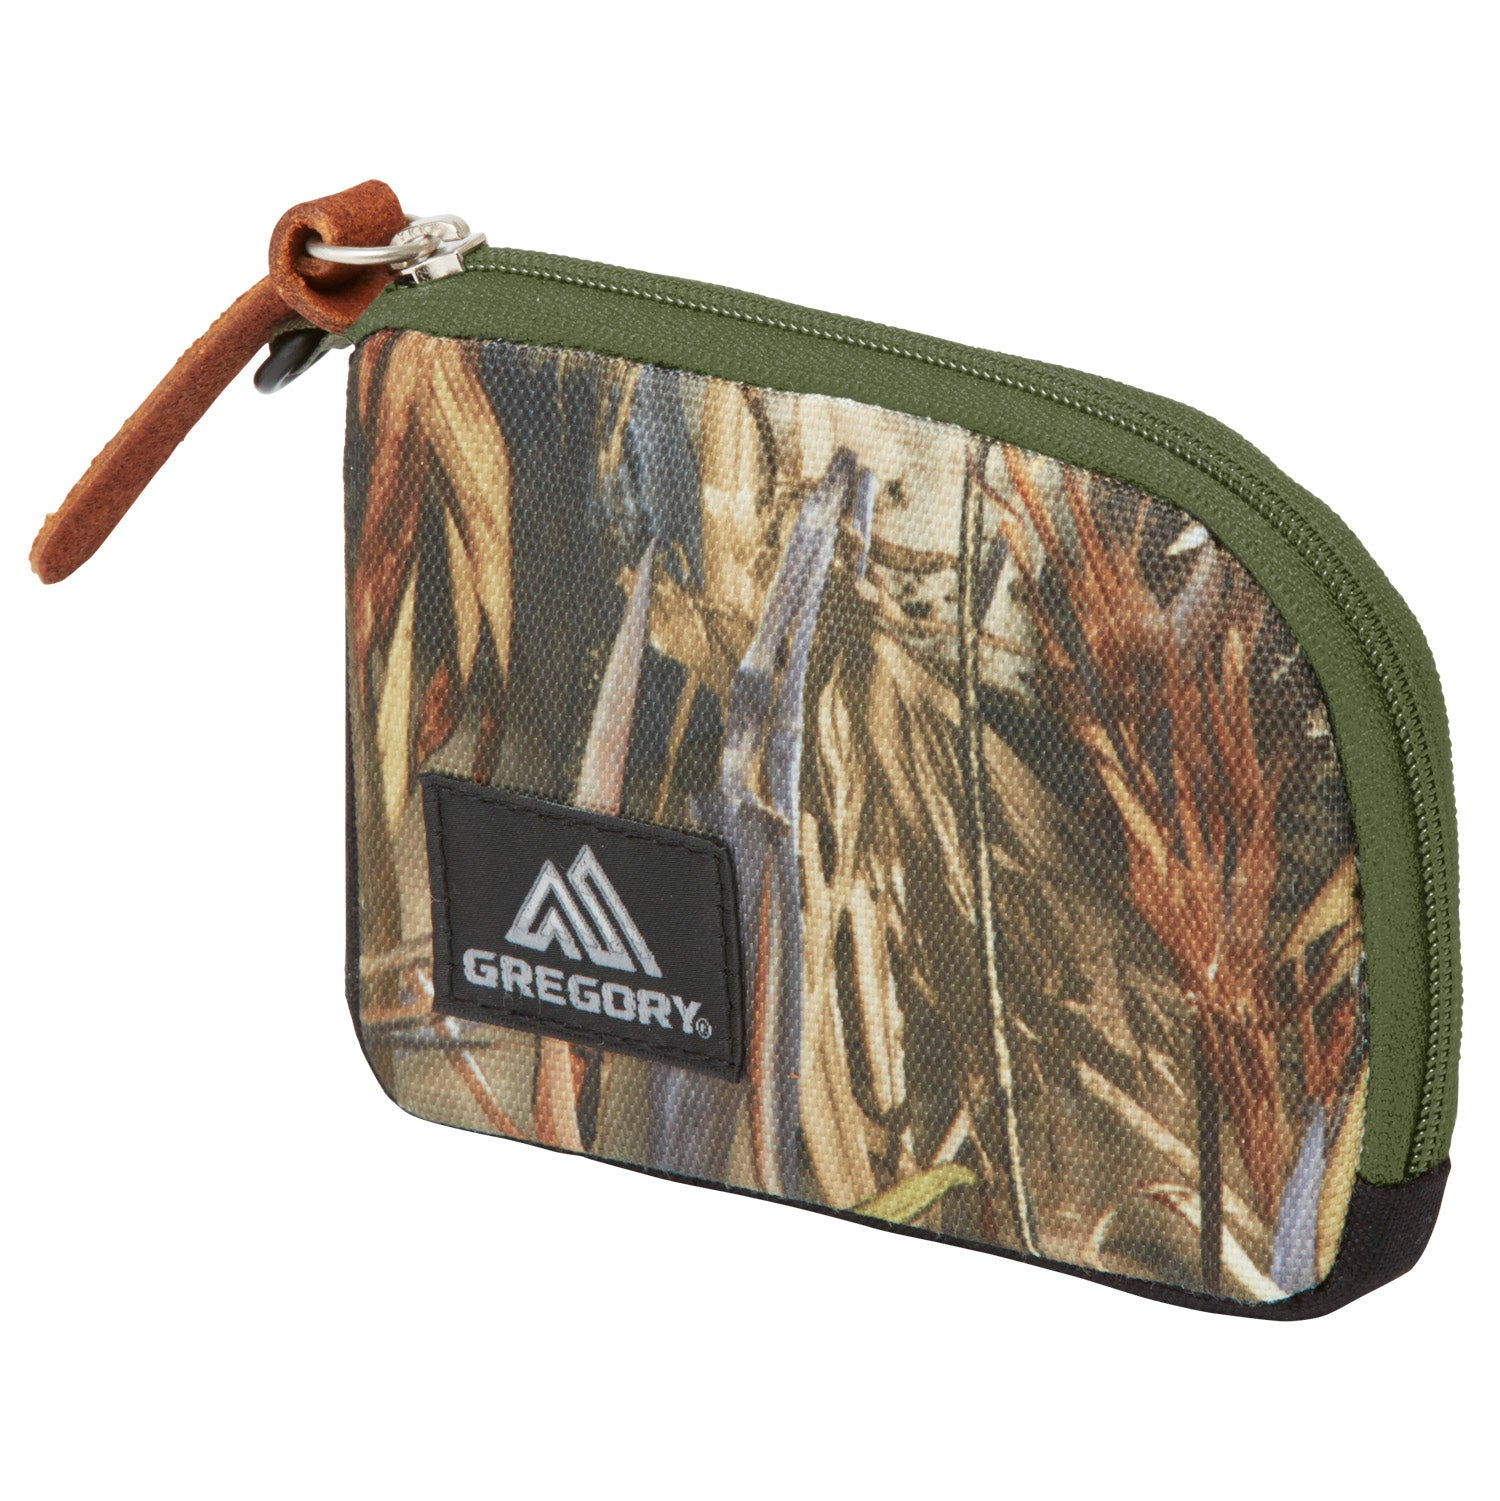 GREGORY COIN WALLET - DRT CAMO – Hock Gift